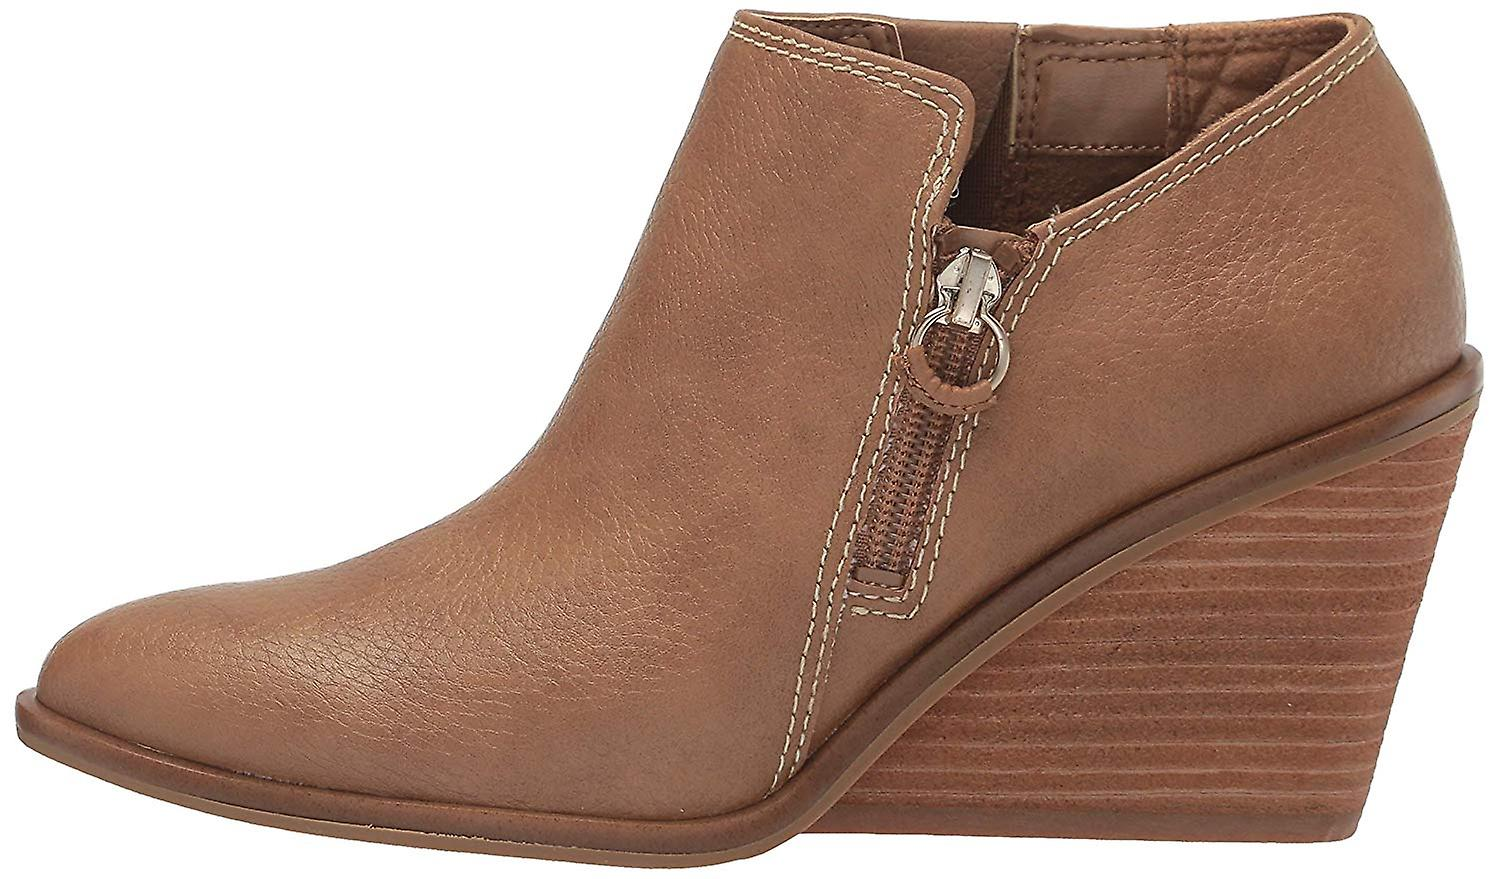 Dr. Scholl's Women's Melody Booties Ankle Boot njClg